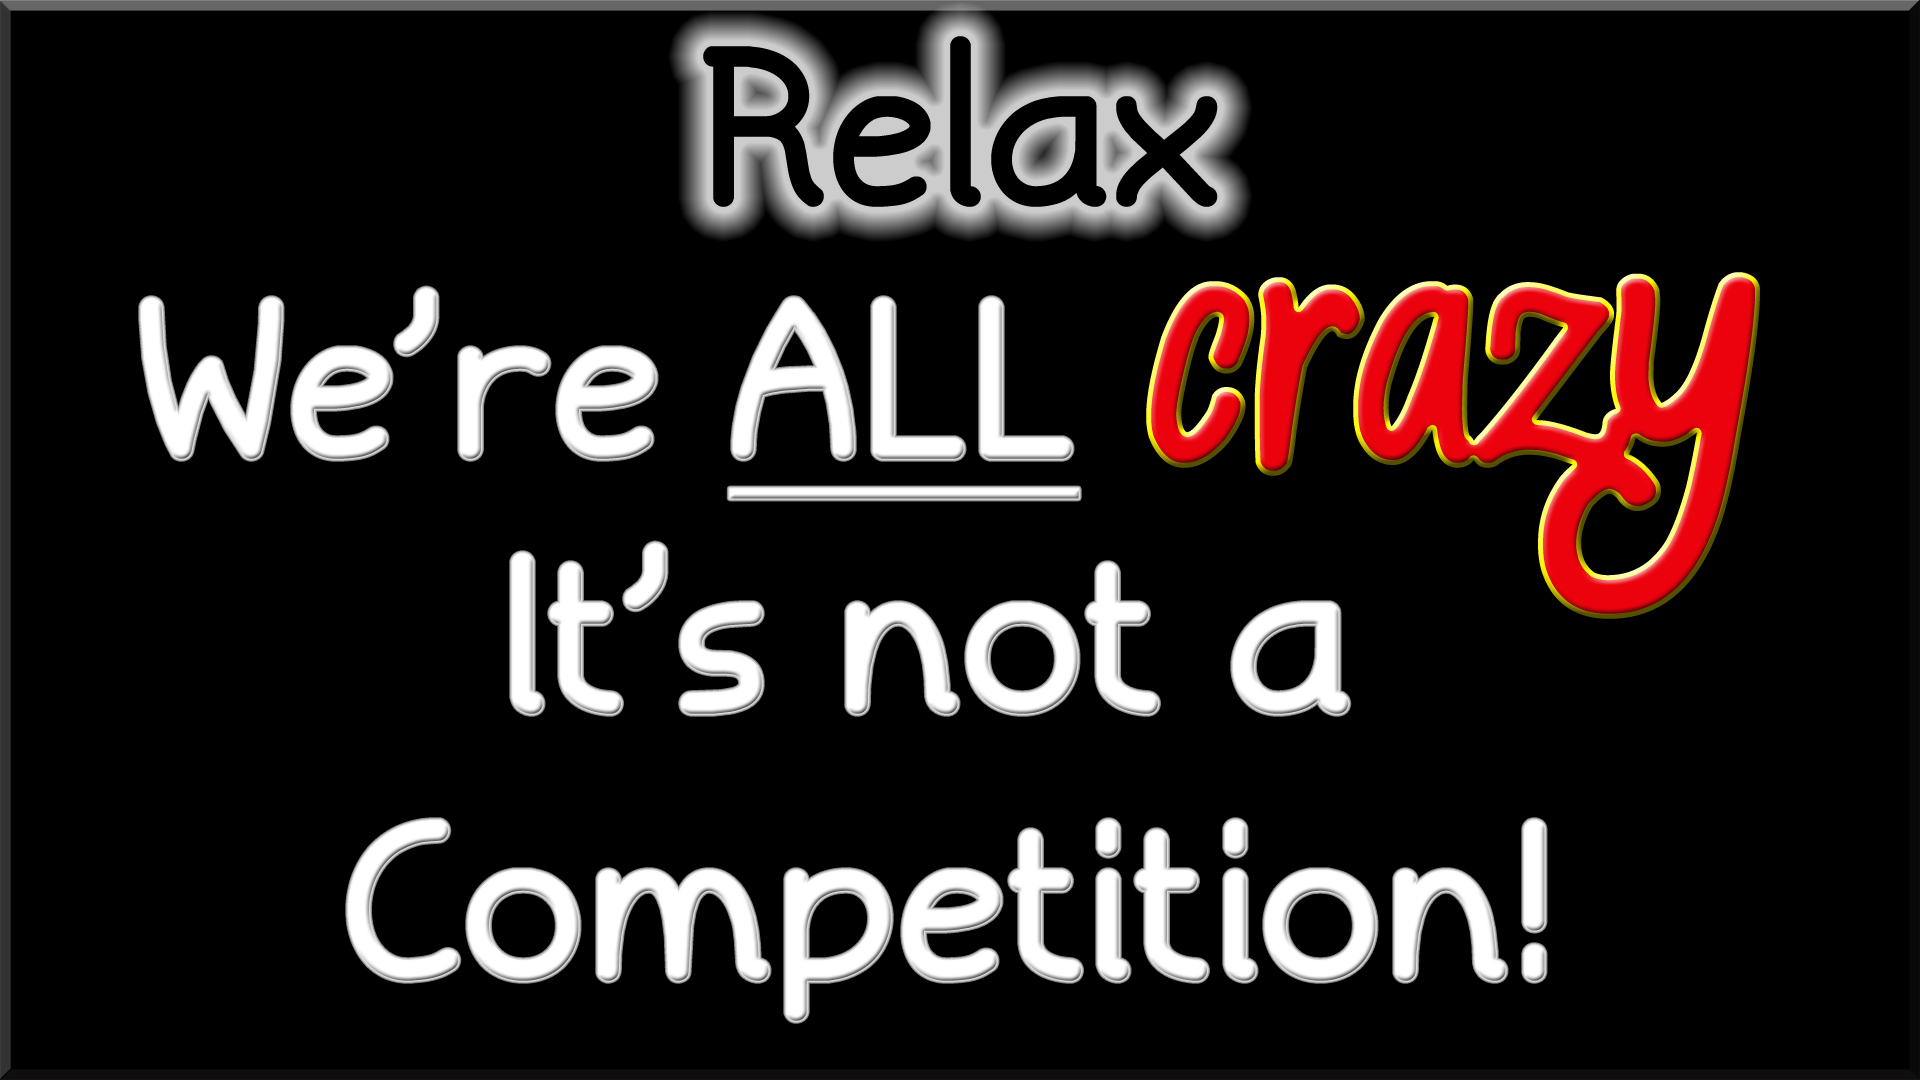 Funny crazy insane quote insult words texts wallpaper 1920x1080 1920x1080